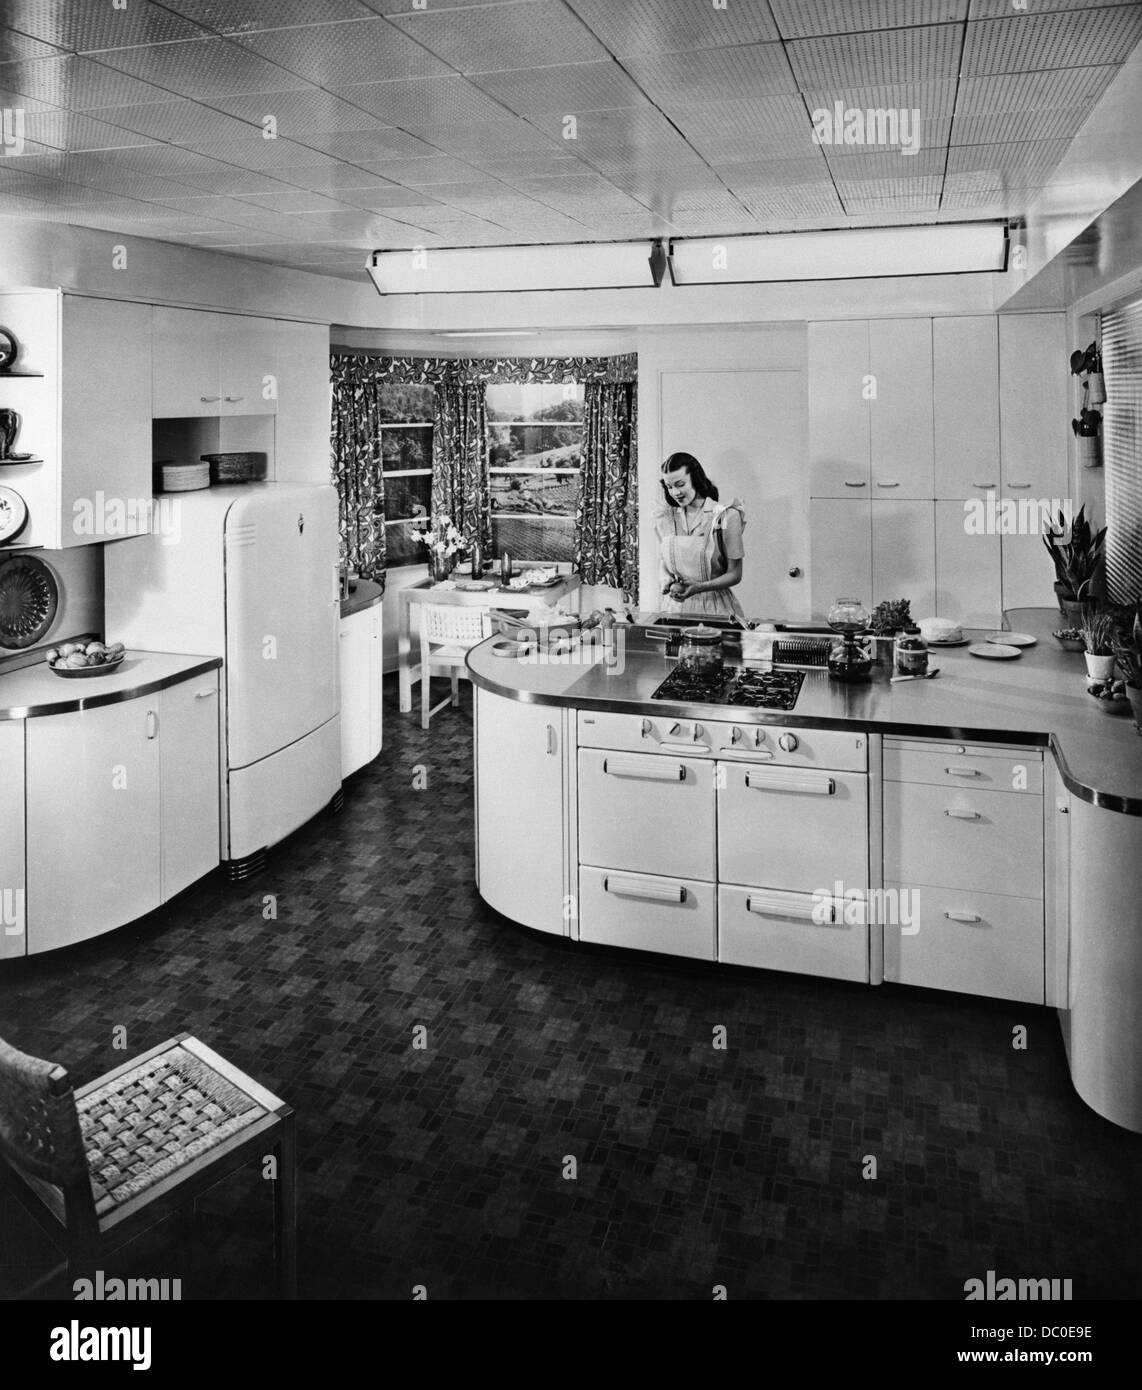 1950s HOUSEWIFE WORKING IN MODERN ELECTRIC KITCHEN Stock Photo